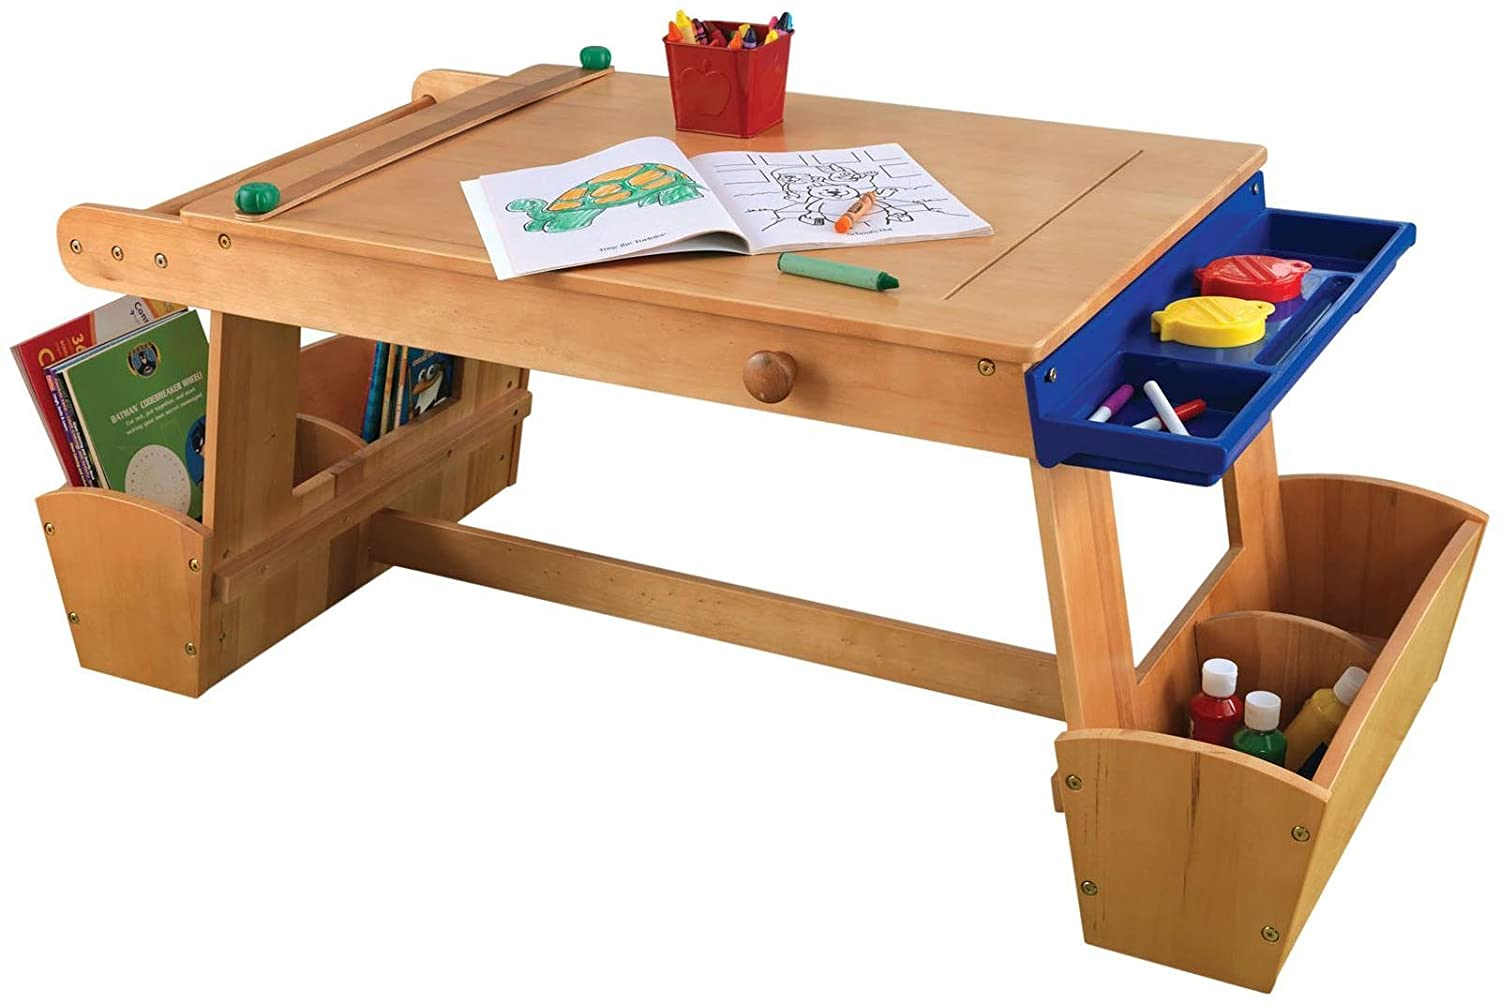 858fd8c96903 Amazon.com  KidKraft Art Table with Drying Rack and Storage  Toys   Games